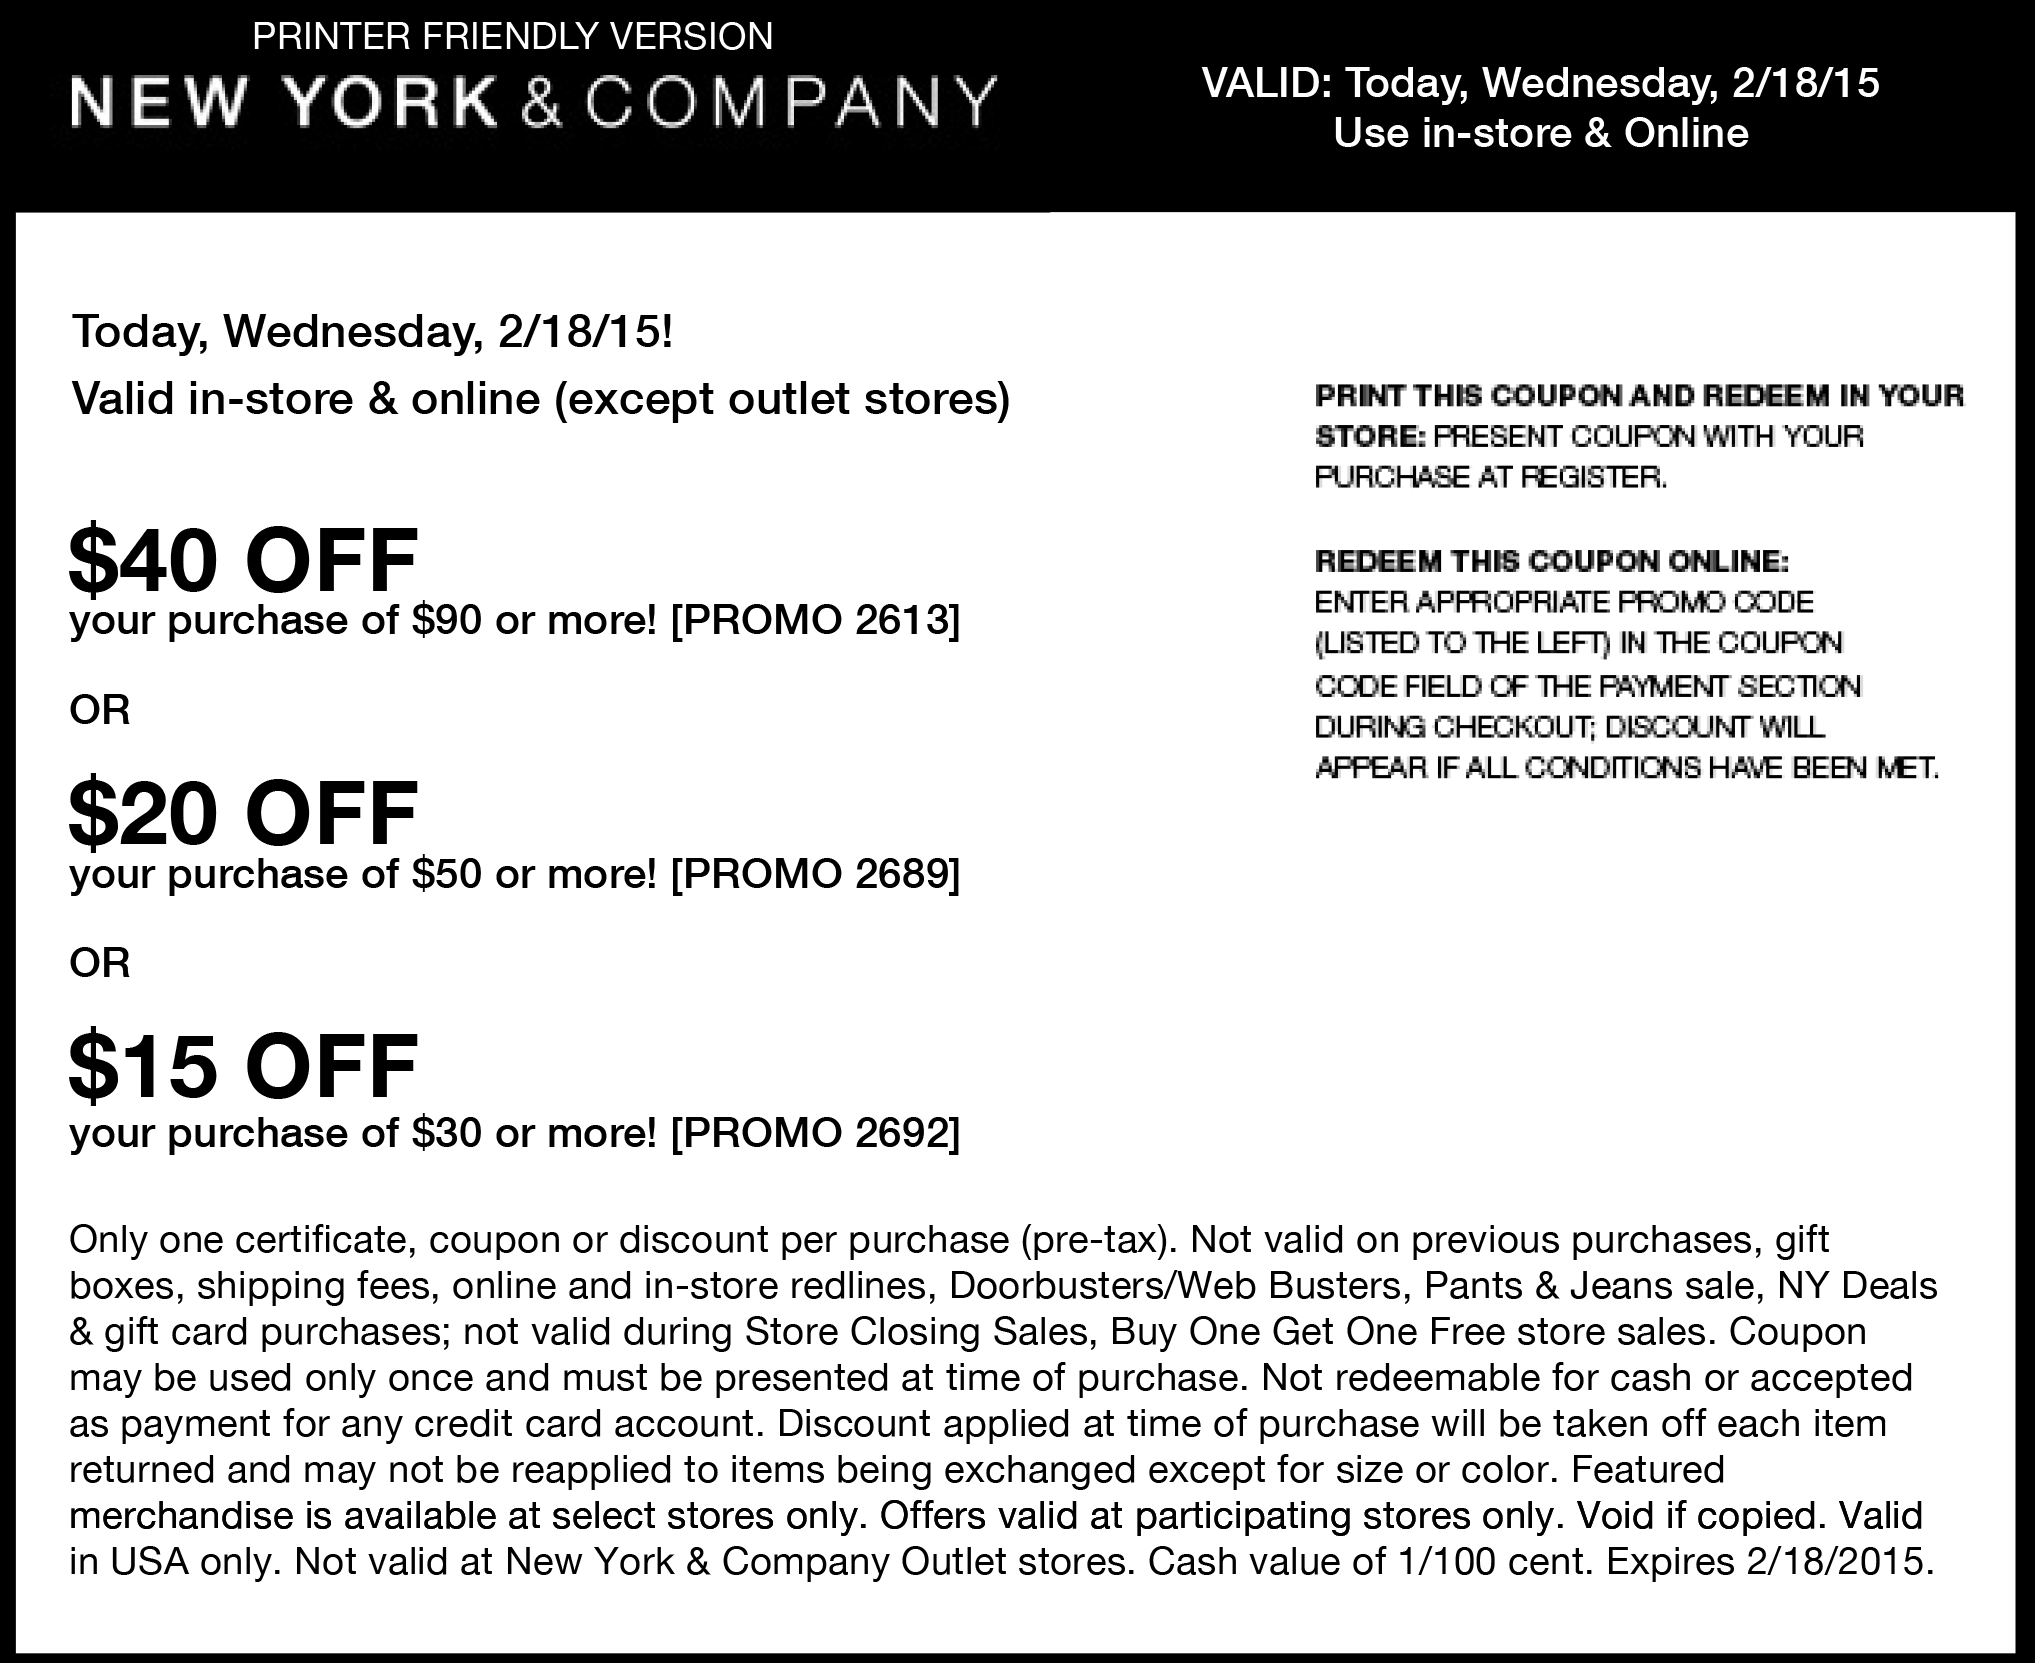 New York & Company Coupon January 2018 $15 off $30 & more today at New York & Company, or online via promo code 2692